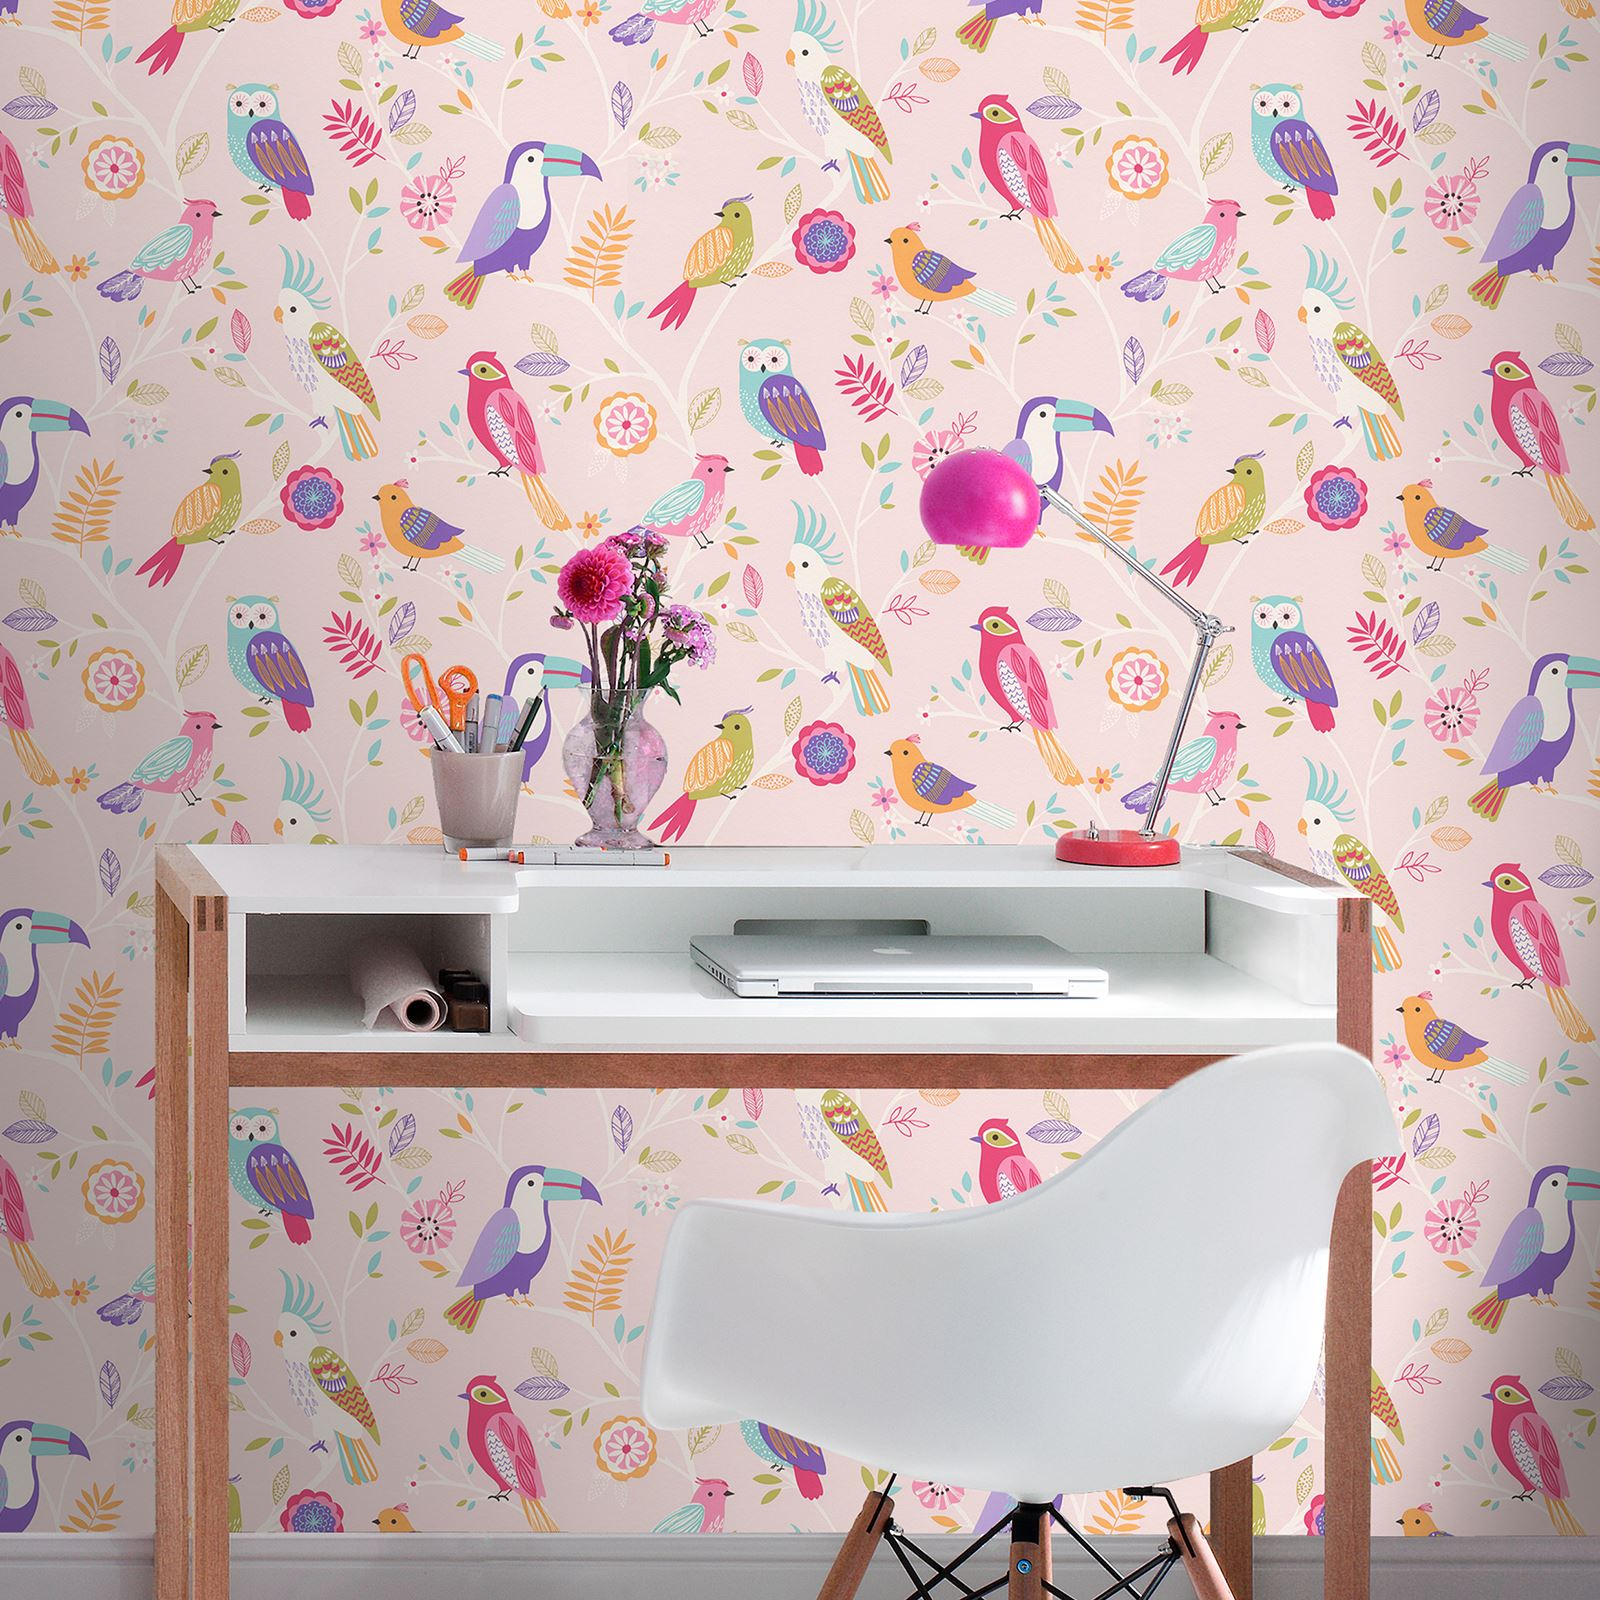 Wallpaper Design For Bedroom: GIRLS WALLPAPER THEMED BEDROOM UNICORN STARS HEART GLITTER